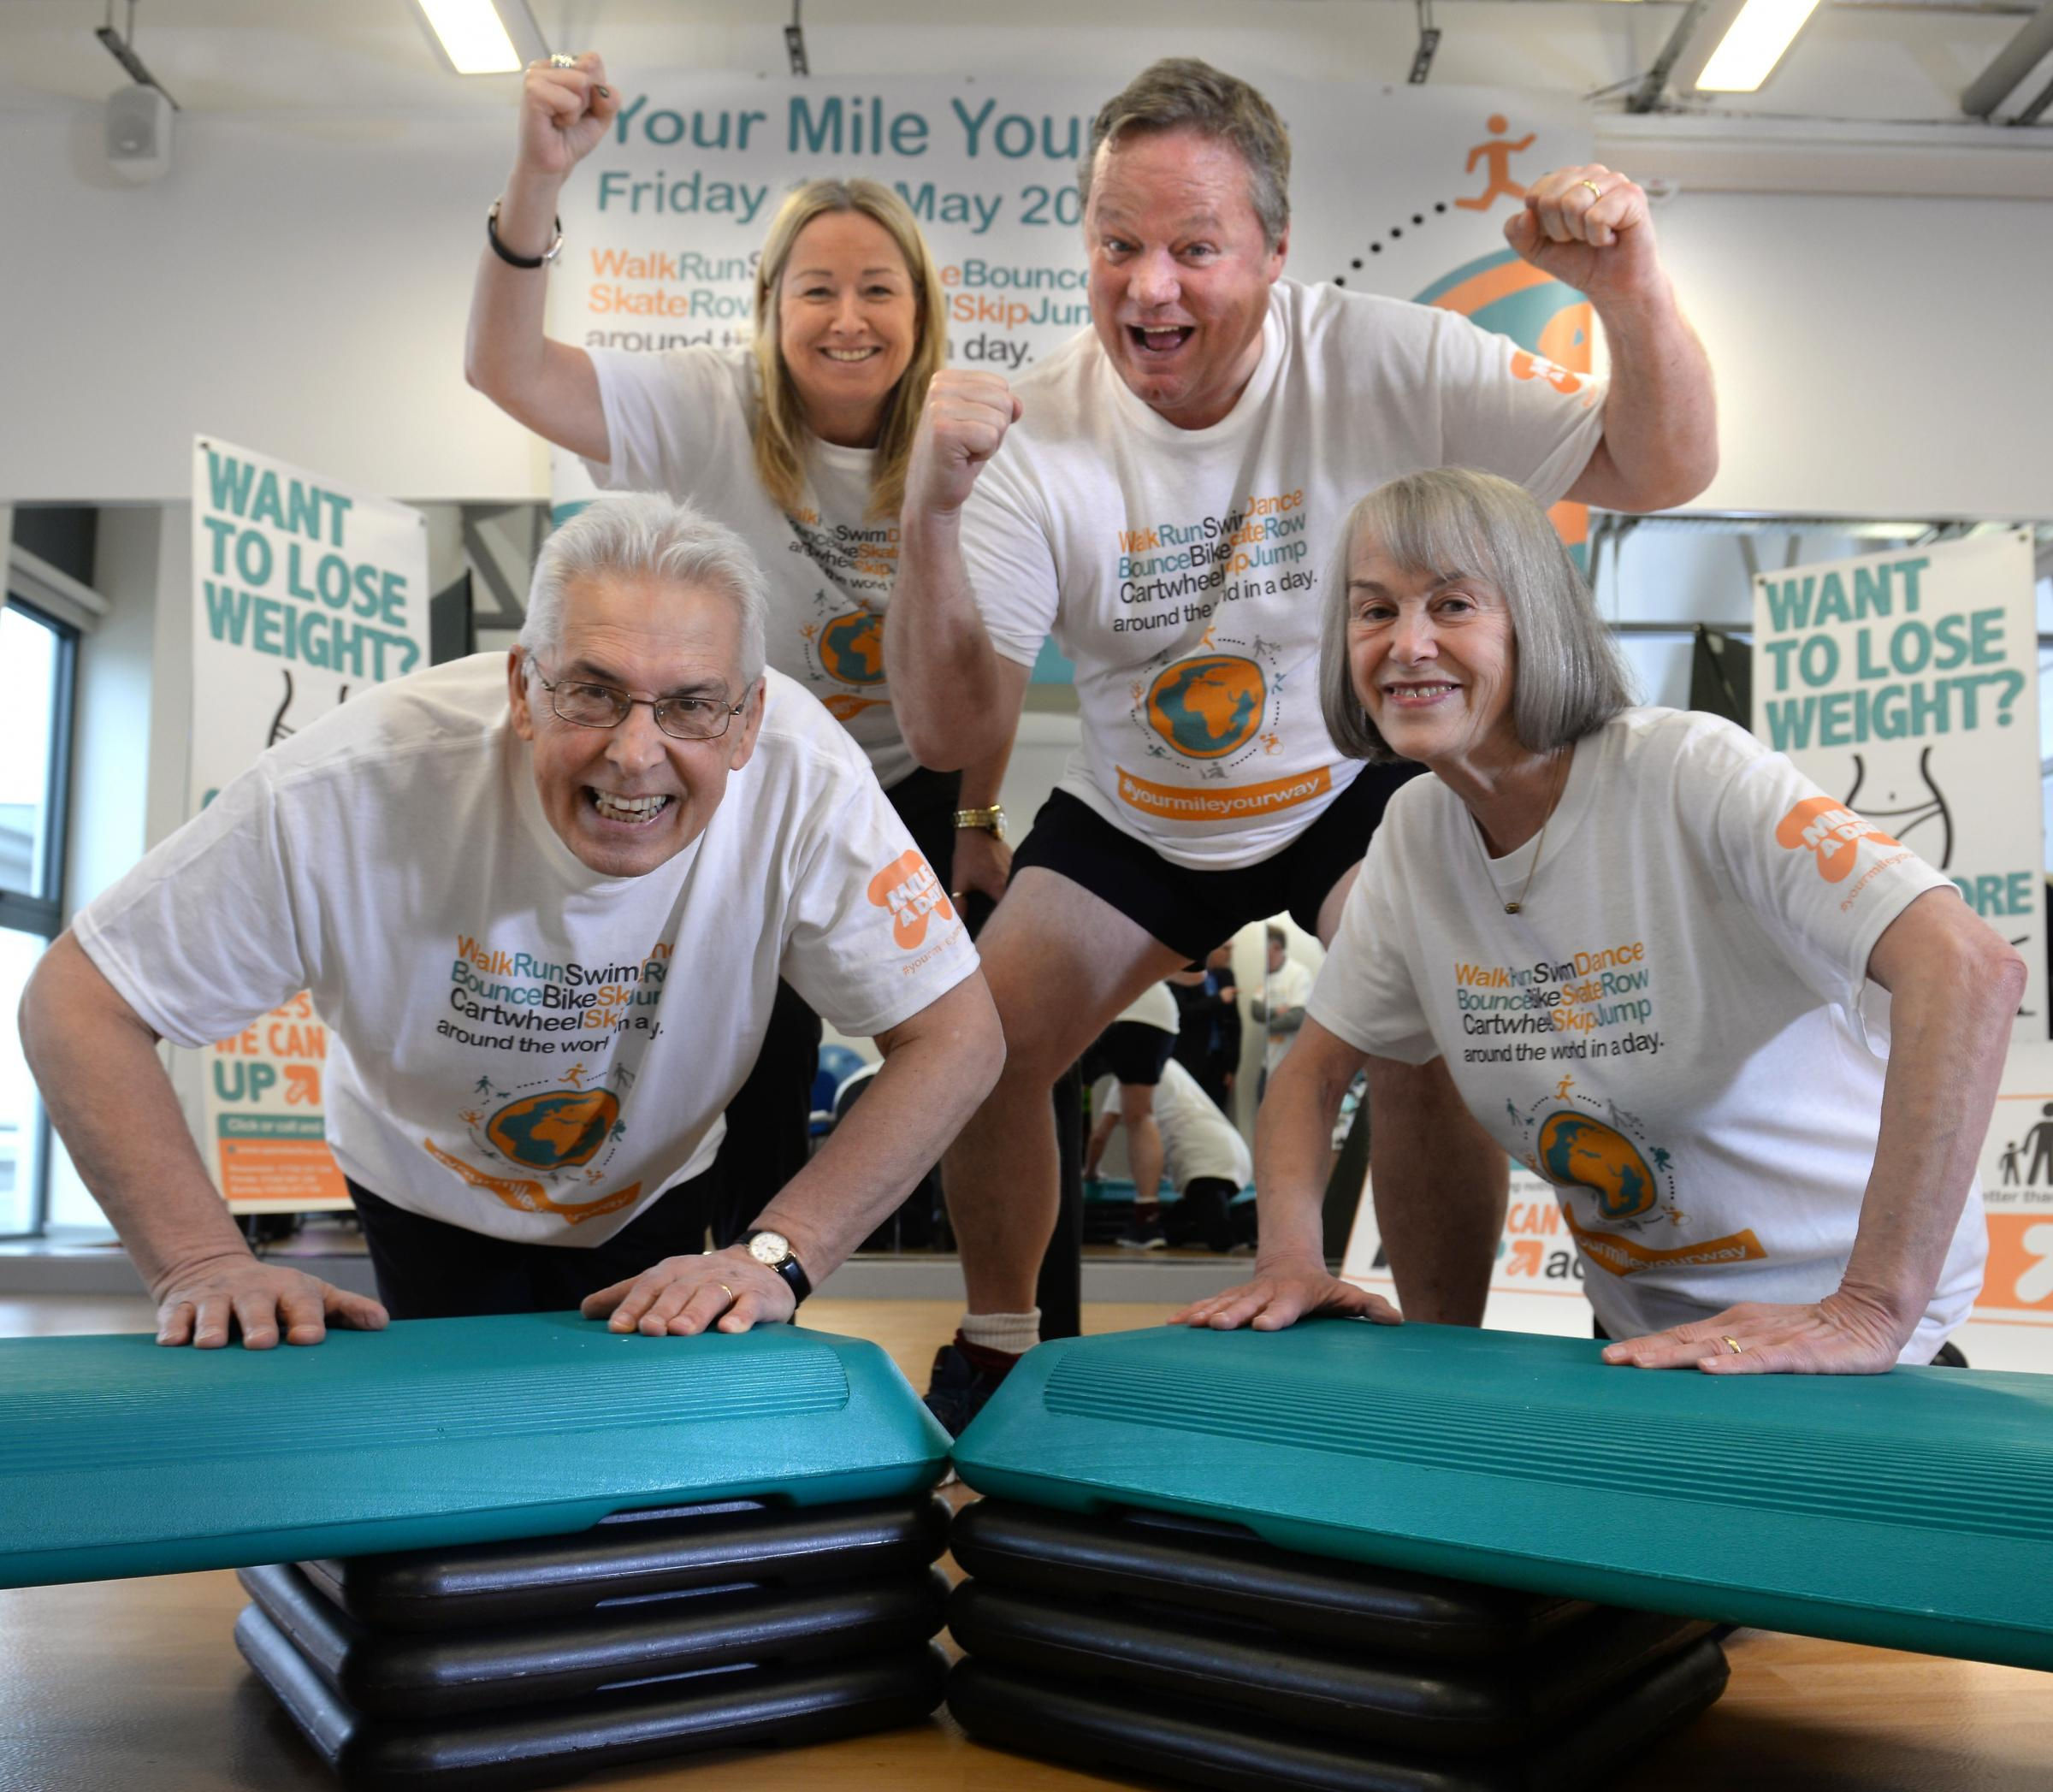 Pendle Leisure Trust's chief executive, Alison Goode, is pictured at the launch with comedian Ted Robbins and Eddie and Kath Forgen, who have both taken part in Pendle's Up and Active programme